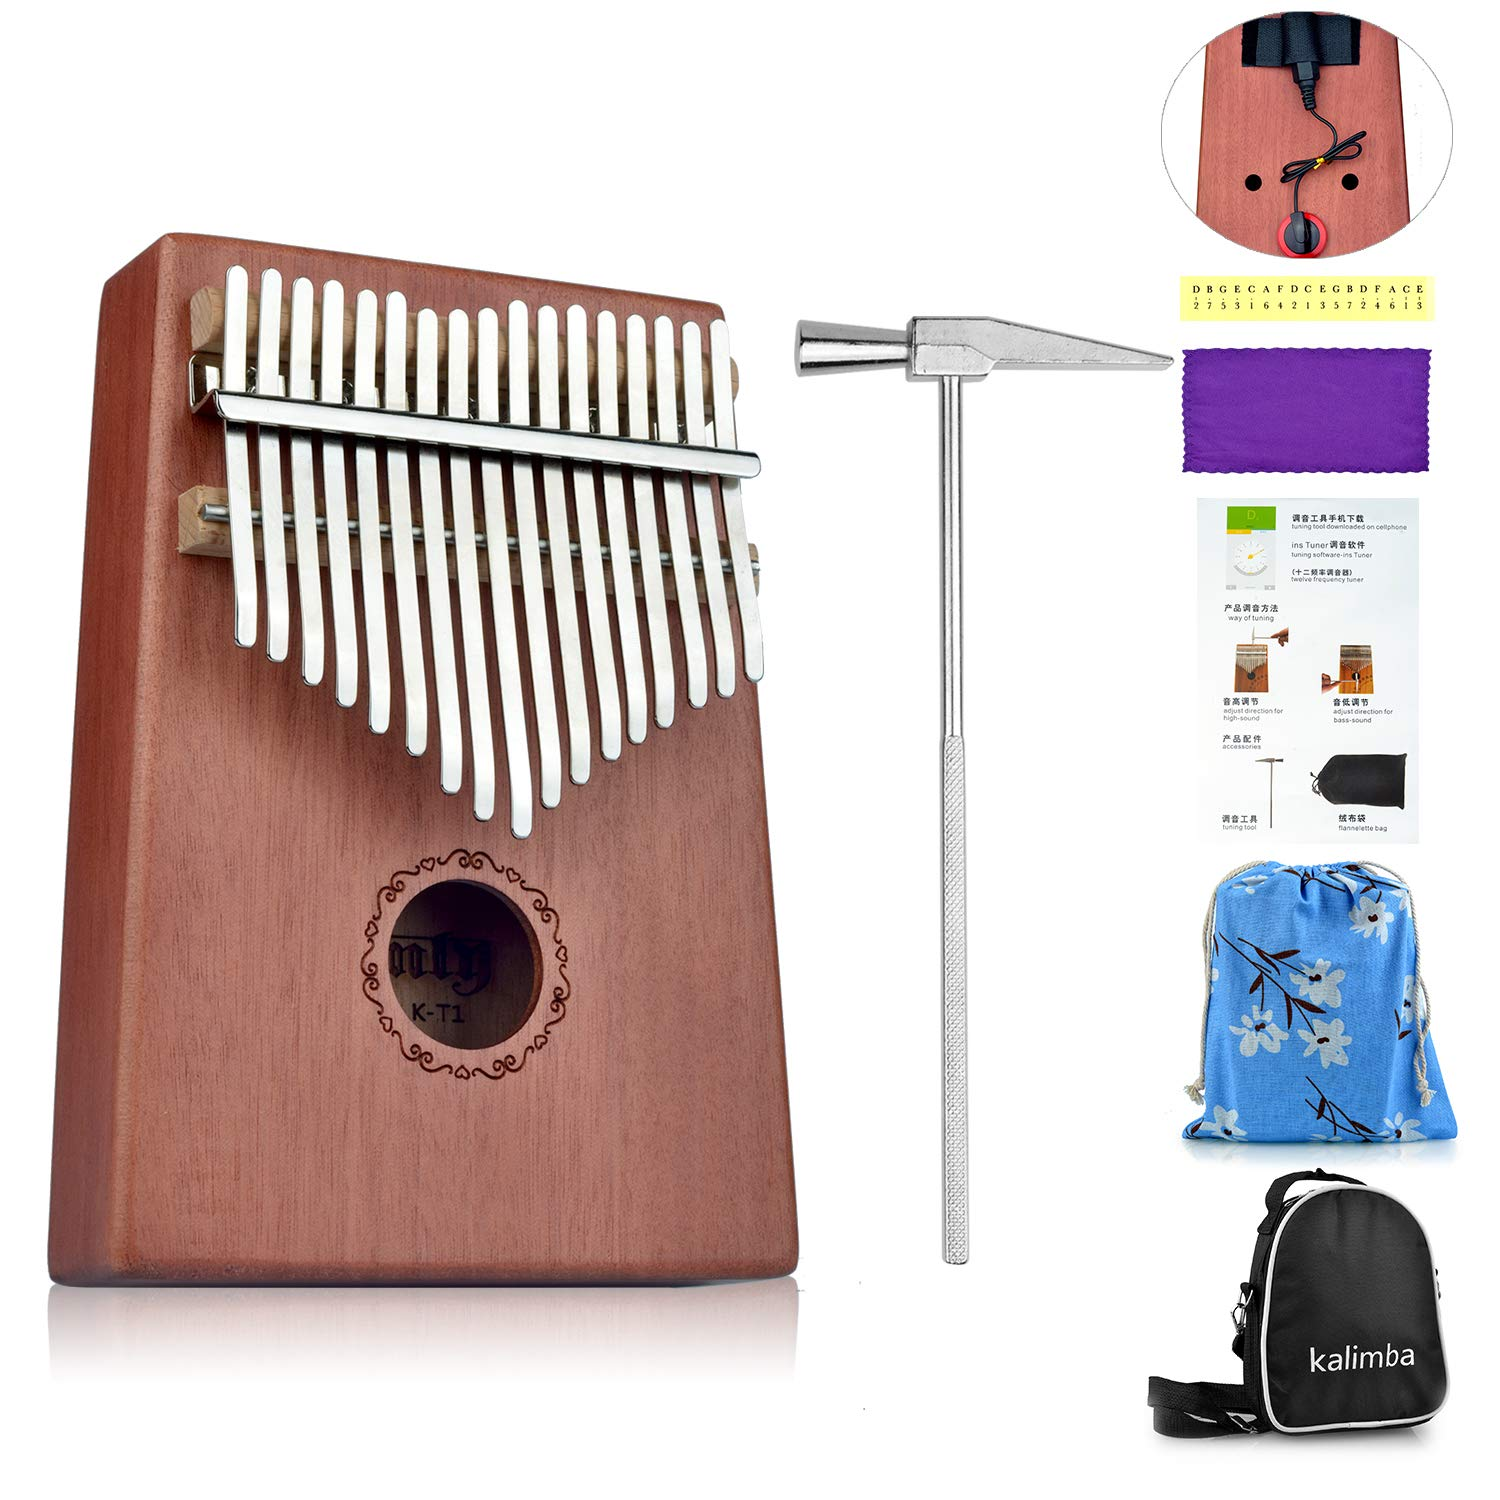 Kalimba Thumb Piano 17 Keys Made of Mahogany, Easy to Learn, 17 Note Finger Piano with Tuning Hammer, Carry Case, Acoustic Pickup Frunsi